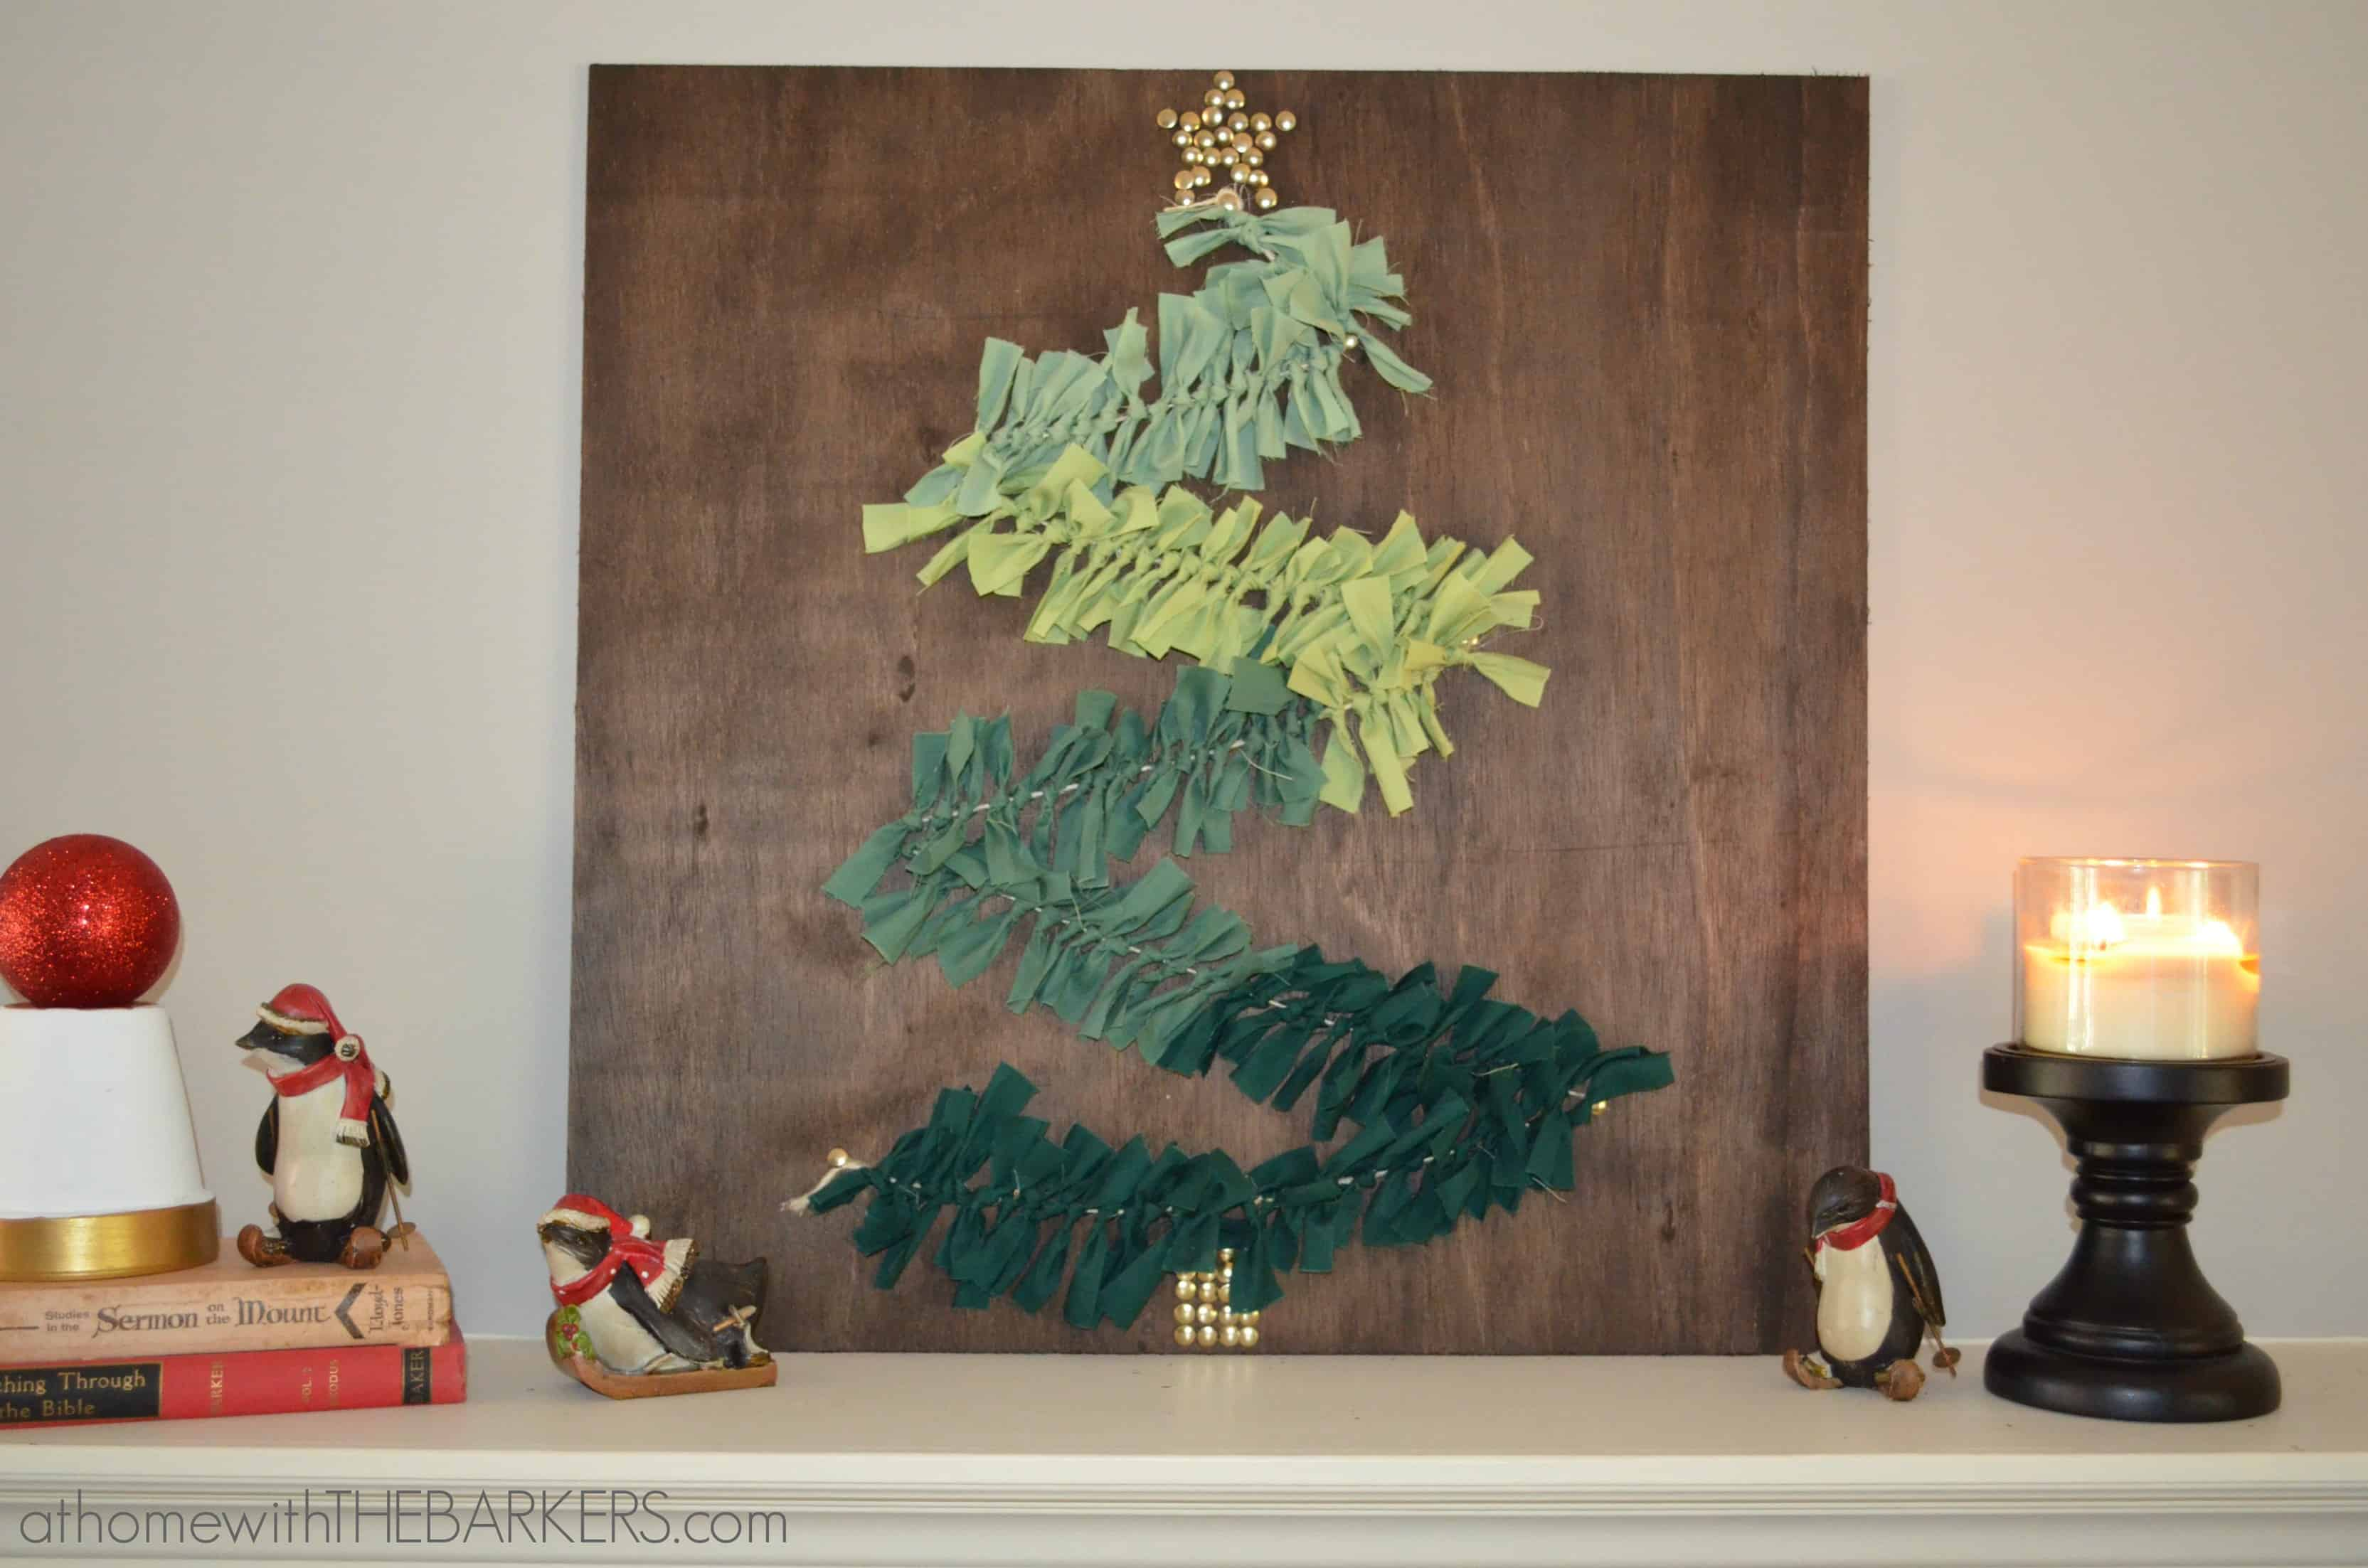 Christmas Wall Decor Diy : Custom art archives at home with the barkers